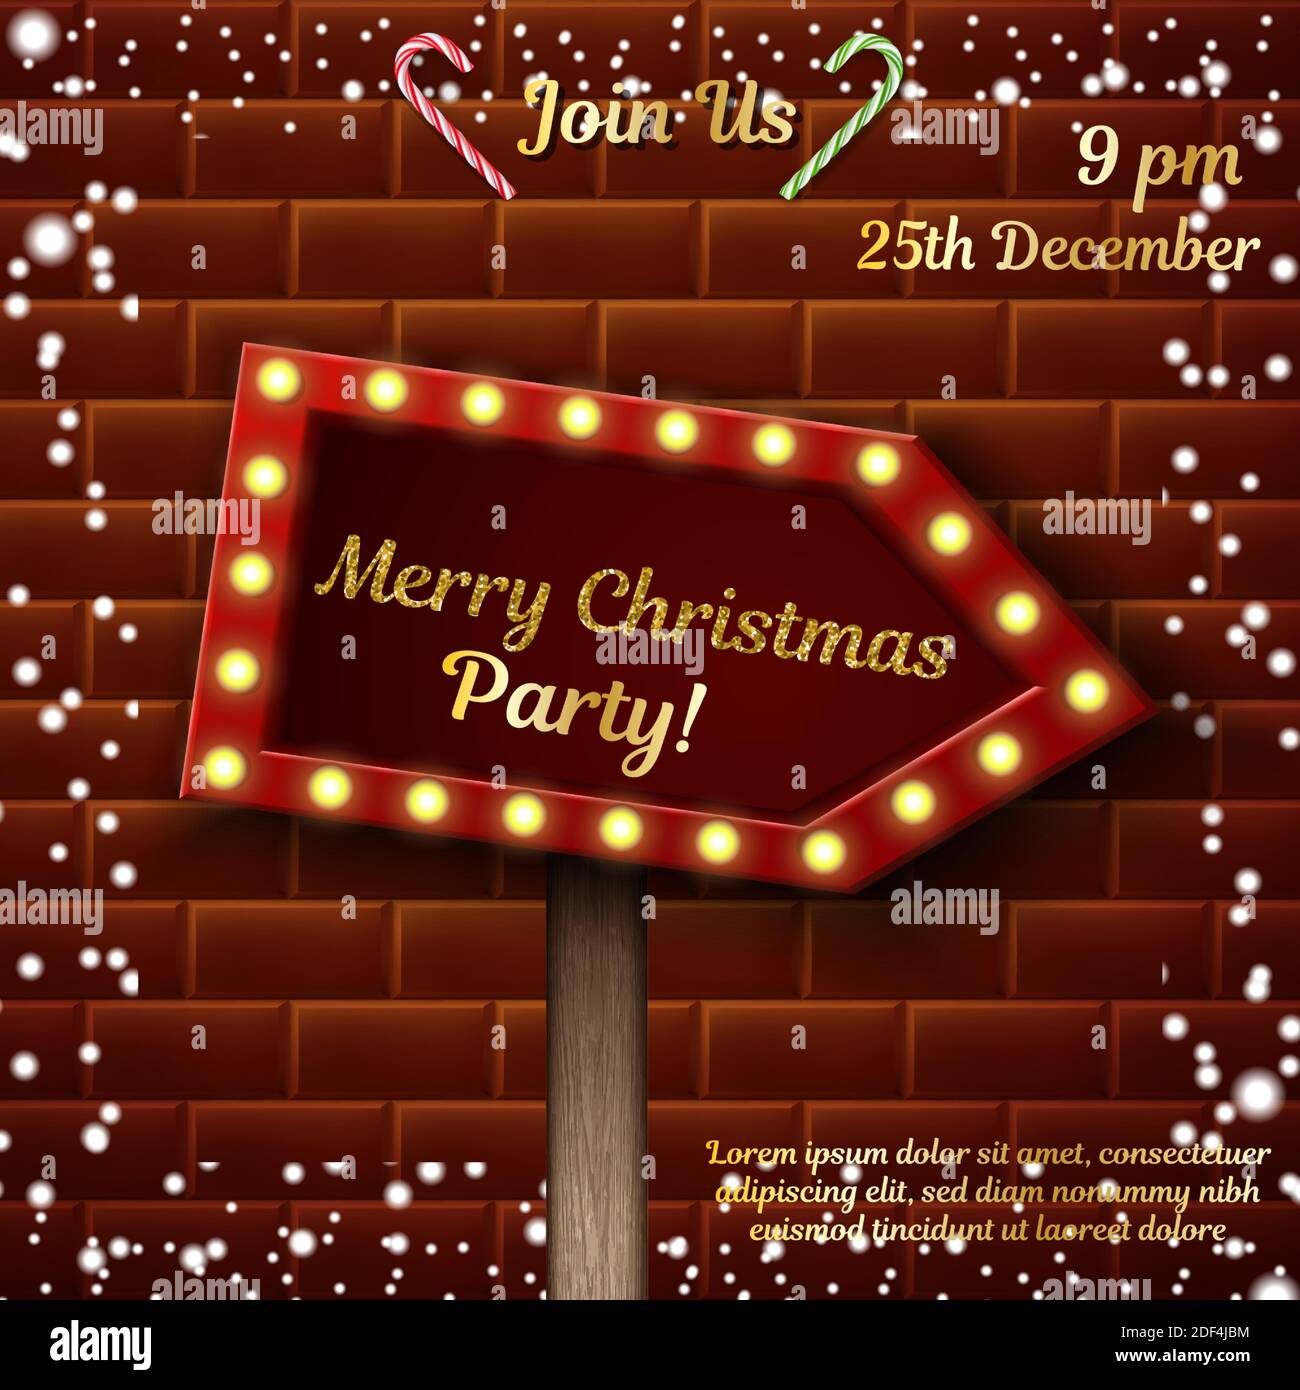 Celebration background. Christmas party invitation design template. Stock Vector